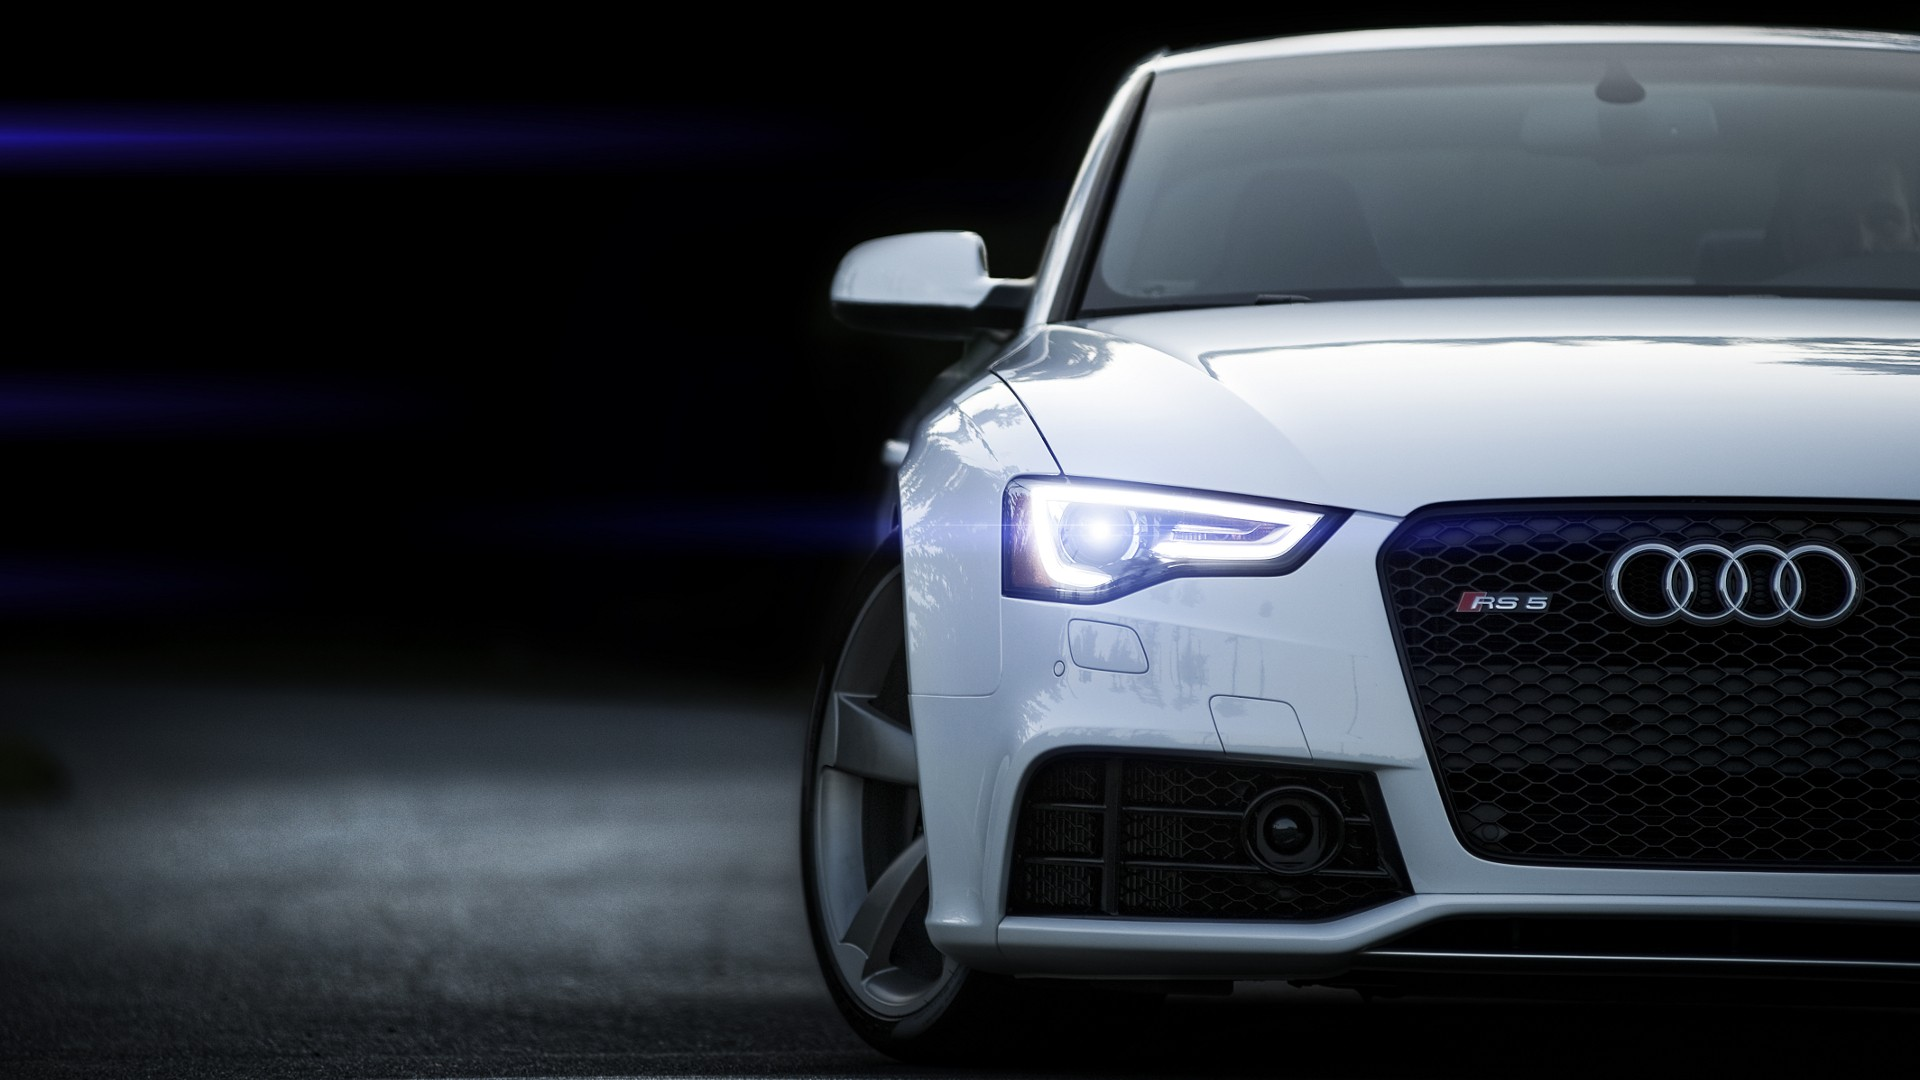 43 Audi Wallpapers Backgrounds in HD For Free Download Audi Wallpaper 10